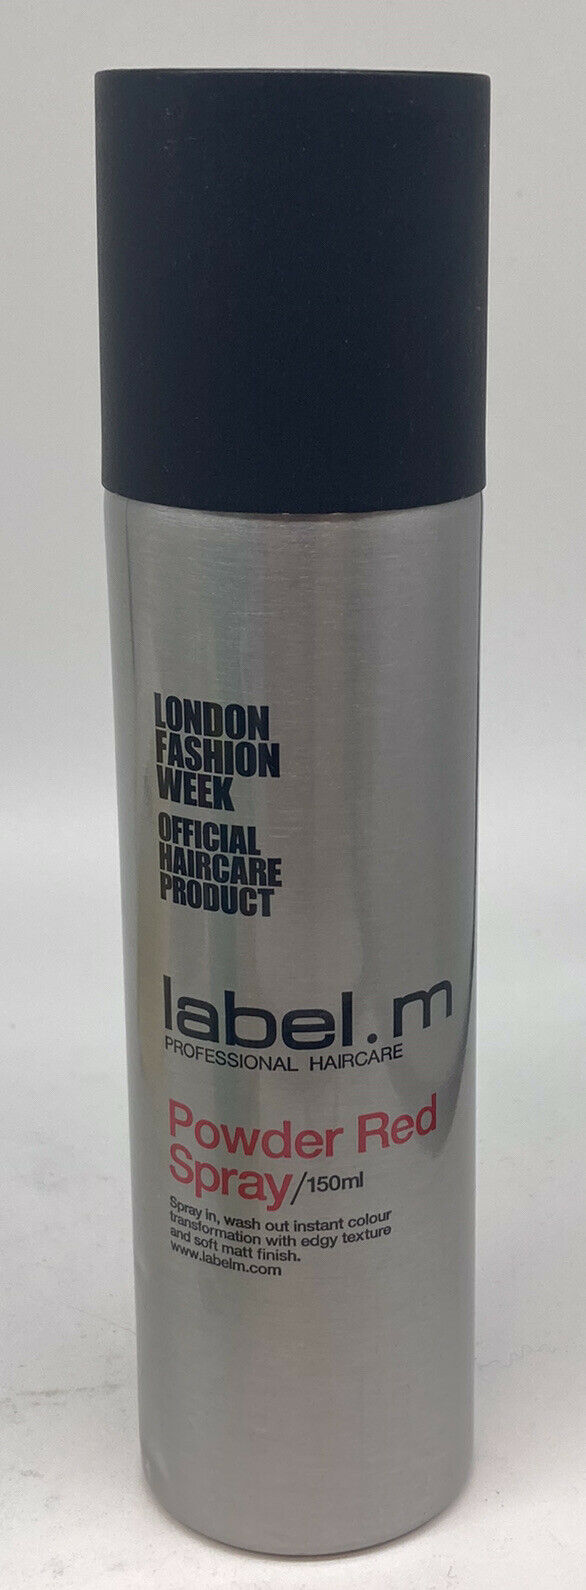 LABEL.M POWDER RED SPRAY 150ml SPRAY IN WASH OUT INSTANT COLOUR